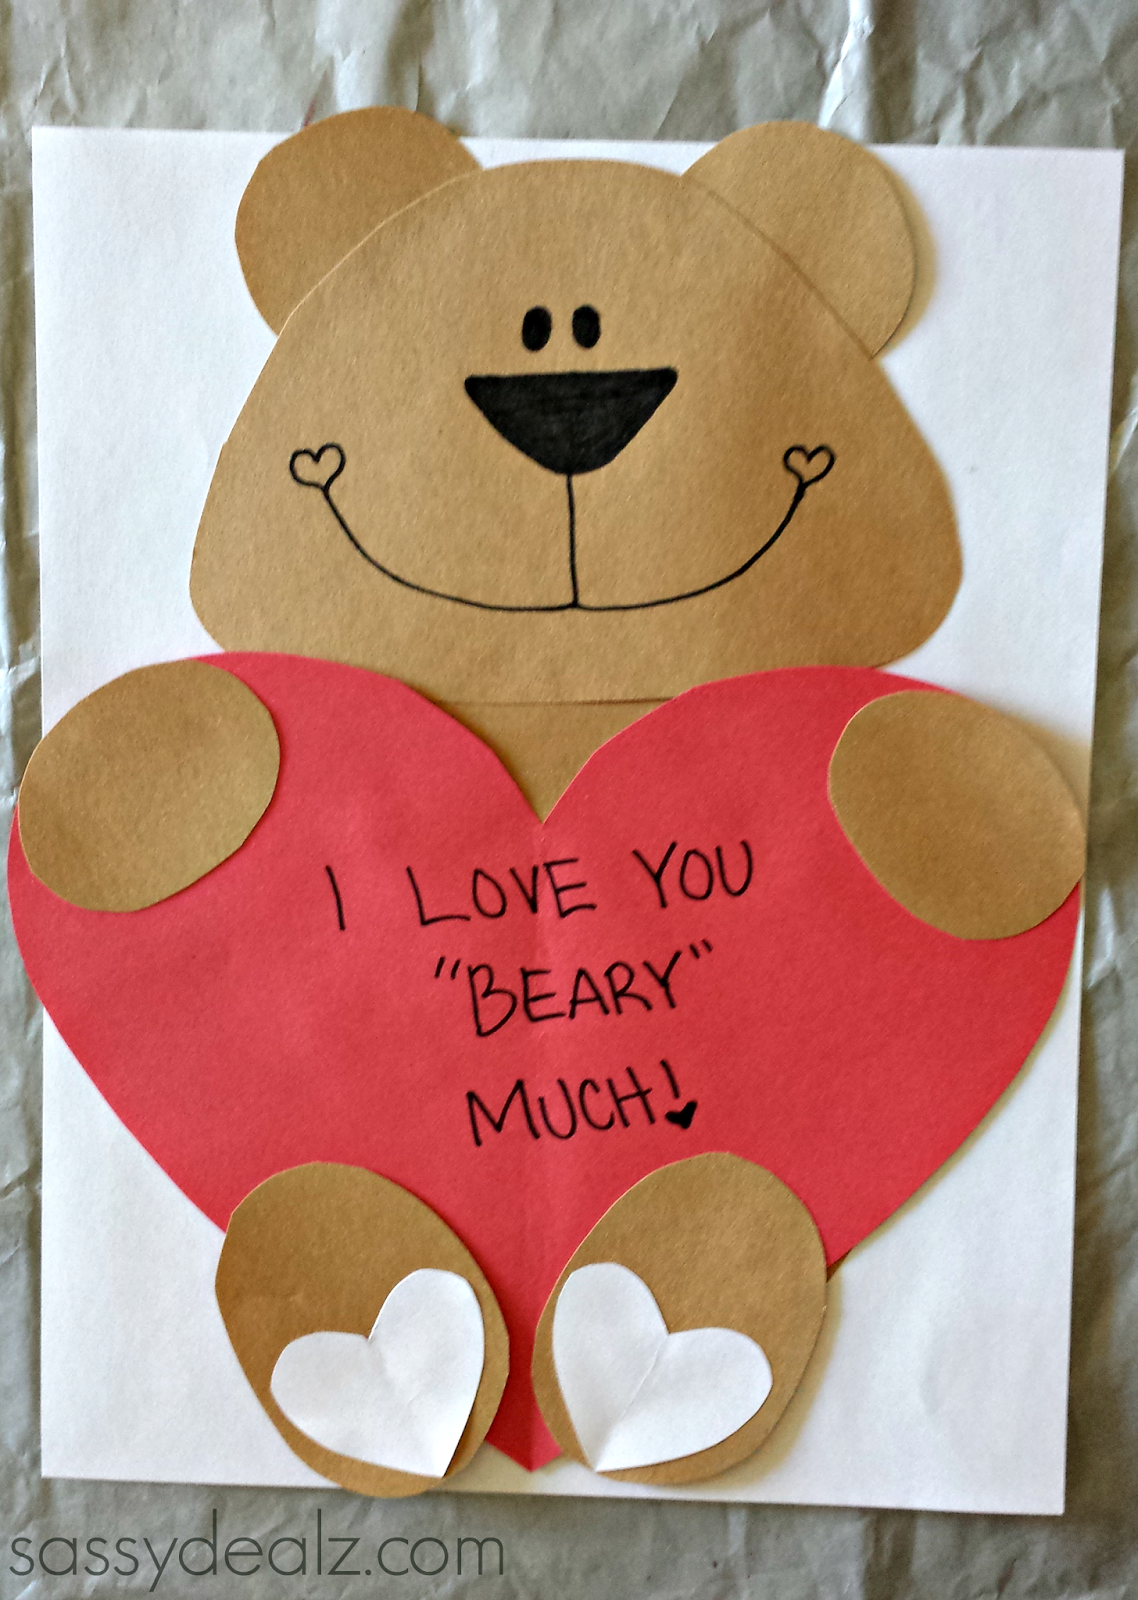 Nothing says love like a handmade gift on Valentine's Day! Get inspiration and instruction for dozens of adorable Valentine's Day crafts for kids of all ages.